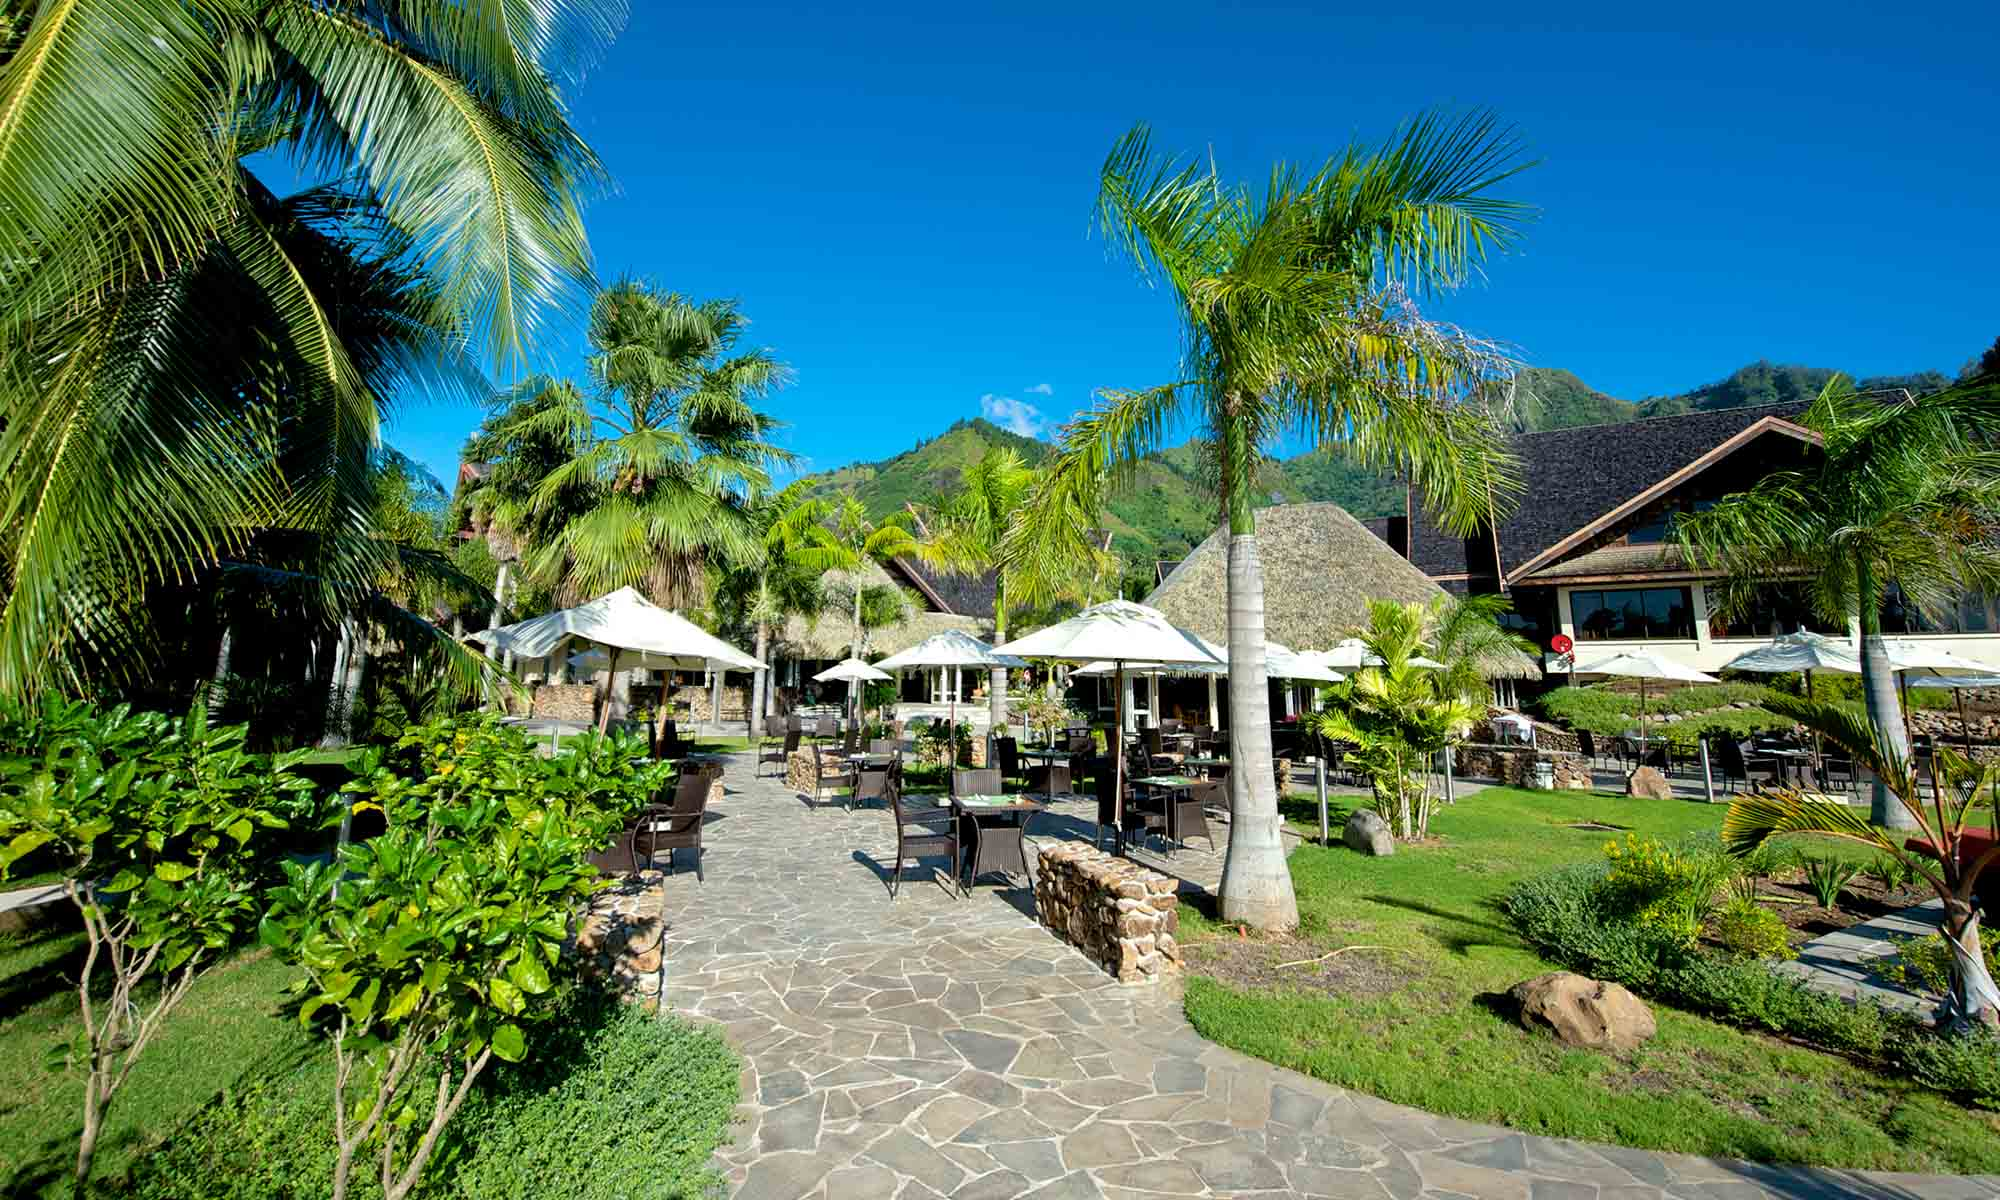 InterContinental Moorea Resort and Spa, Hotel Grounds